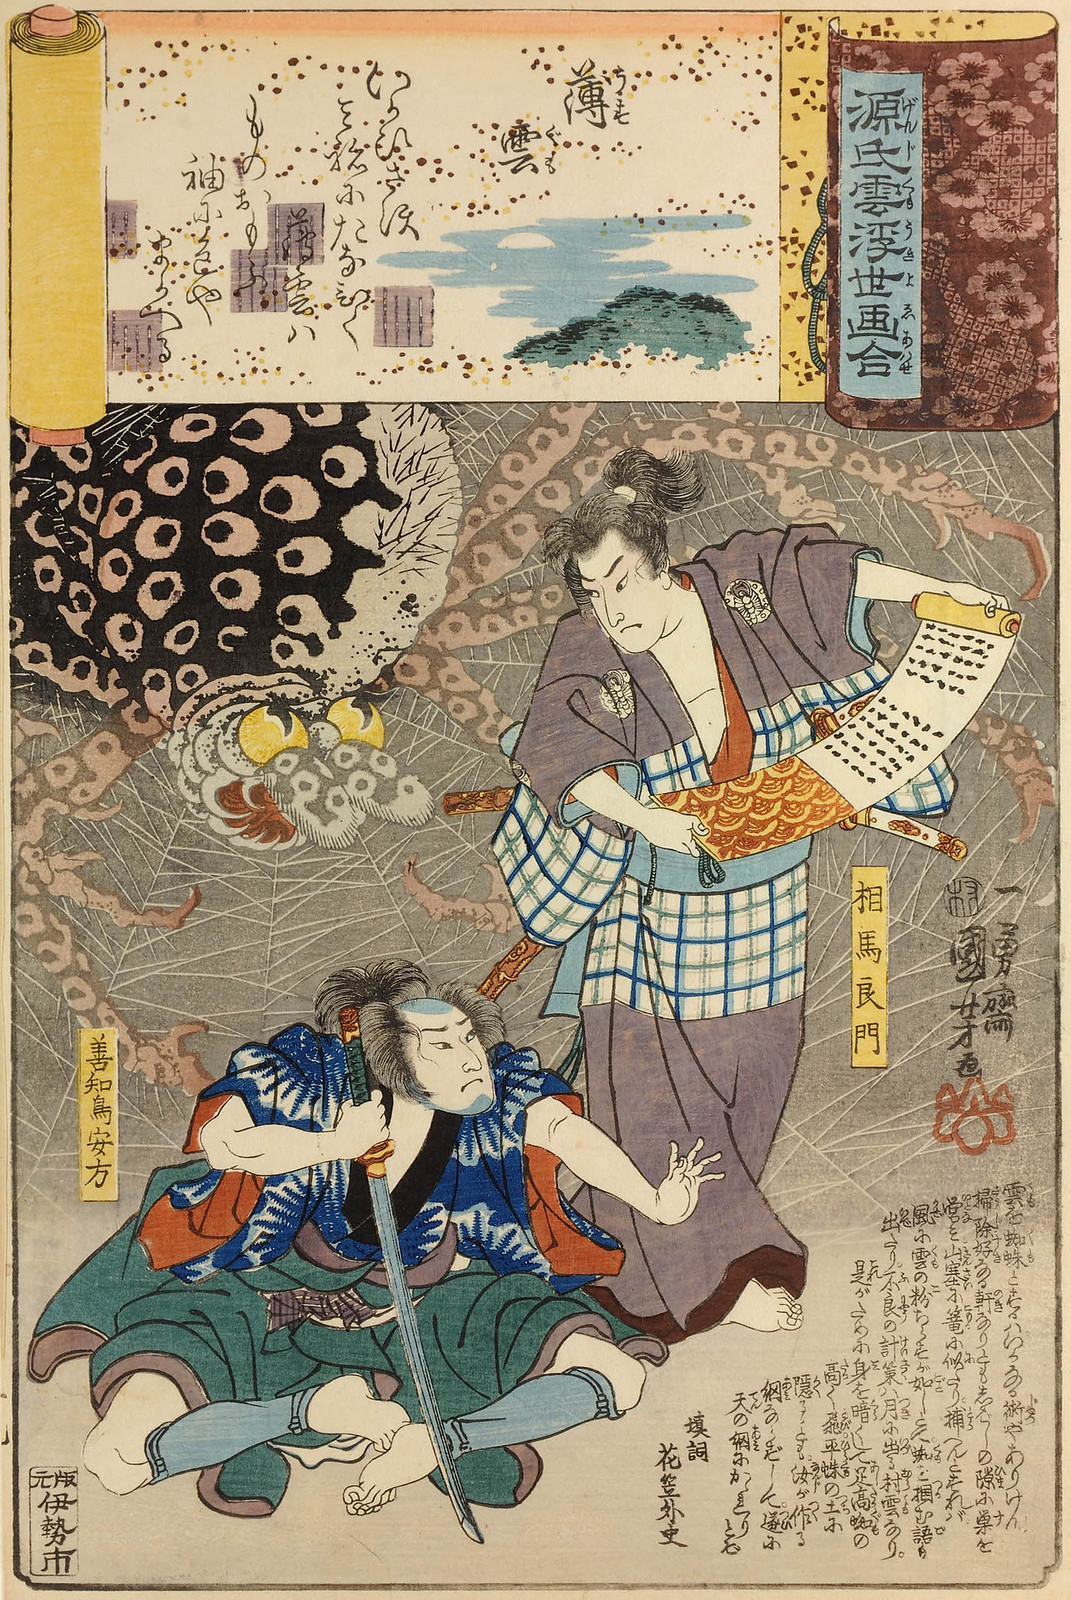 Utagawa Kuniyoshi - Usugumo (No. 19 Wisps of Cloud) 1845-46